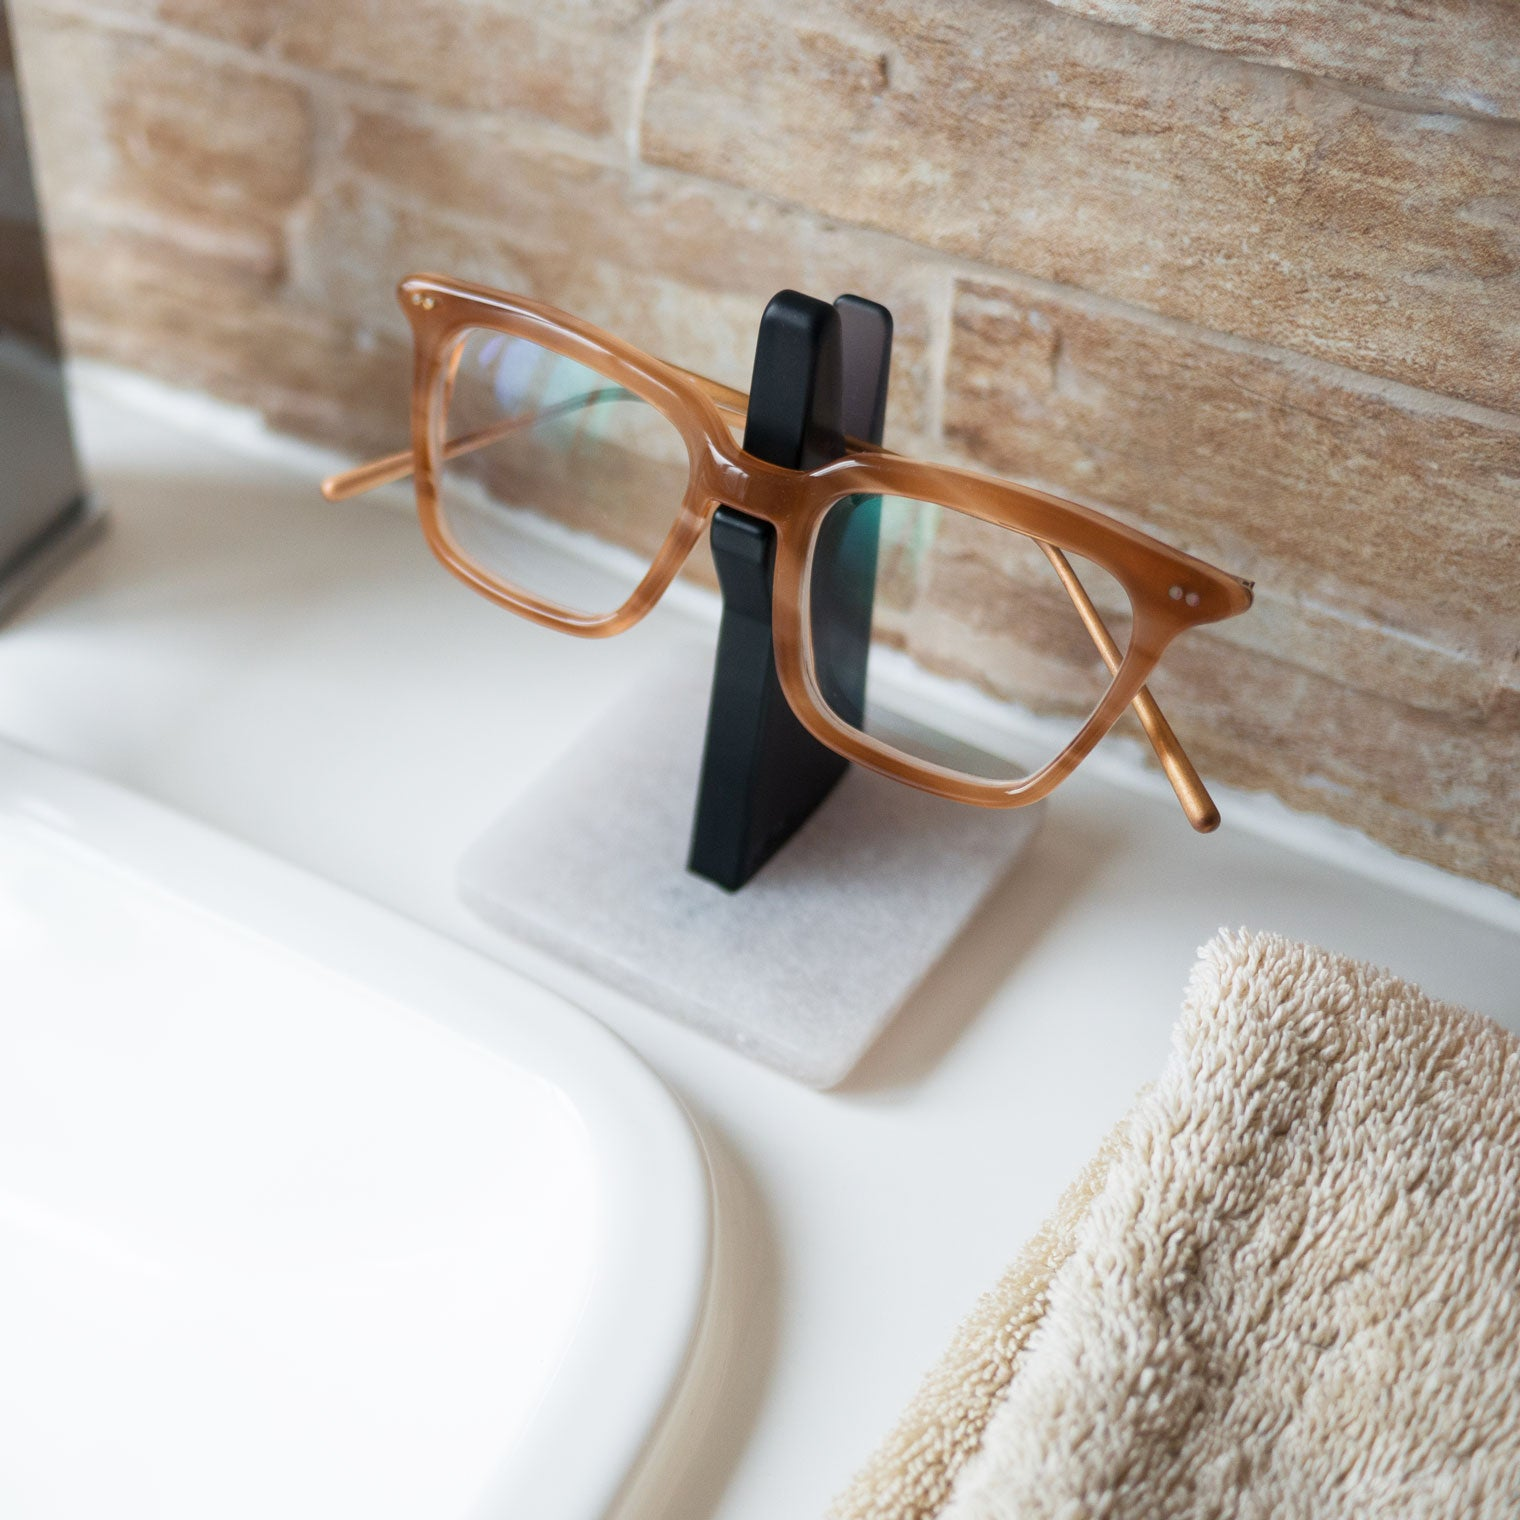 Glasses frame on spectacle stand in bathroom